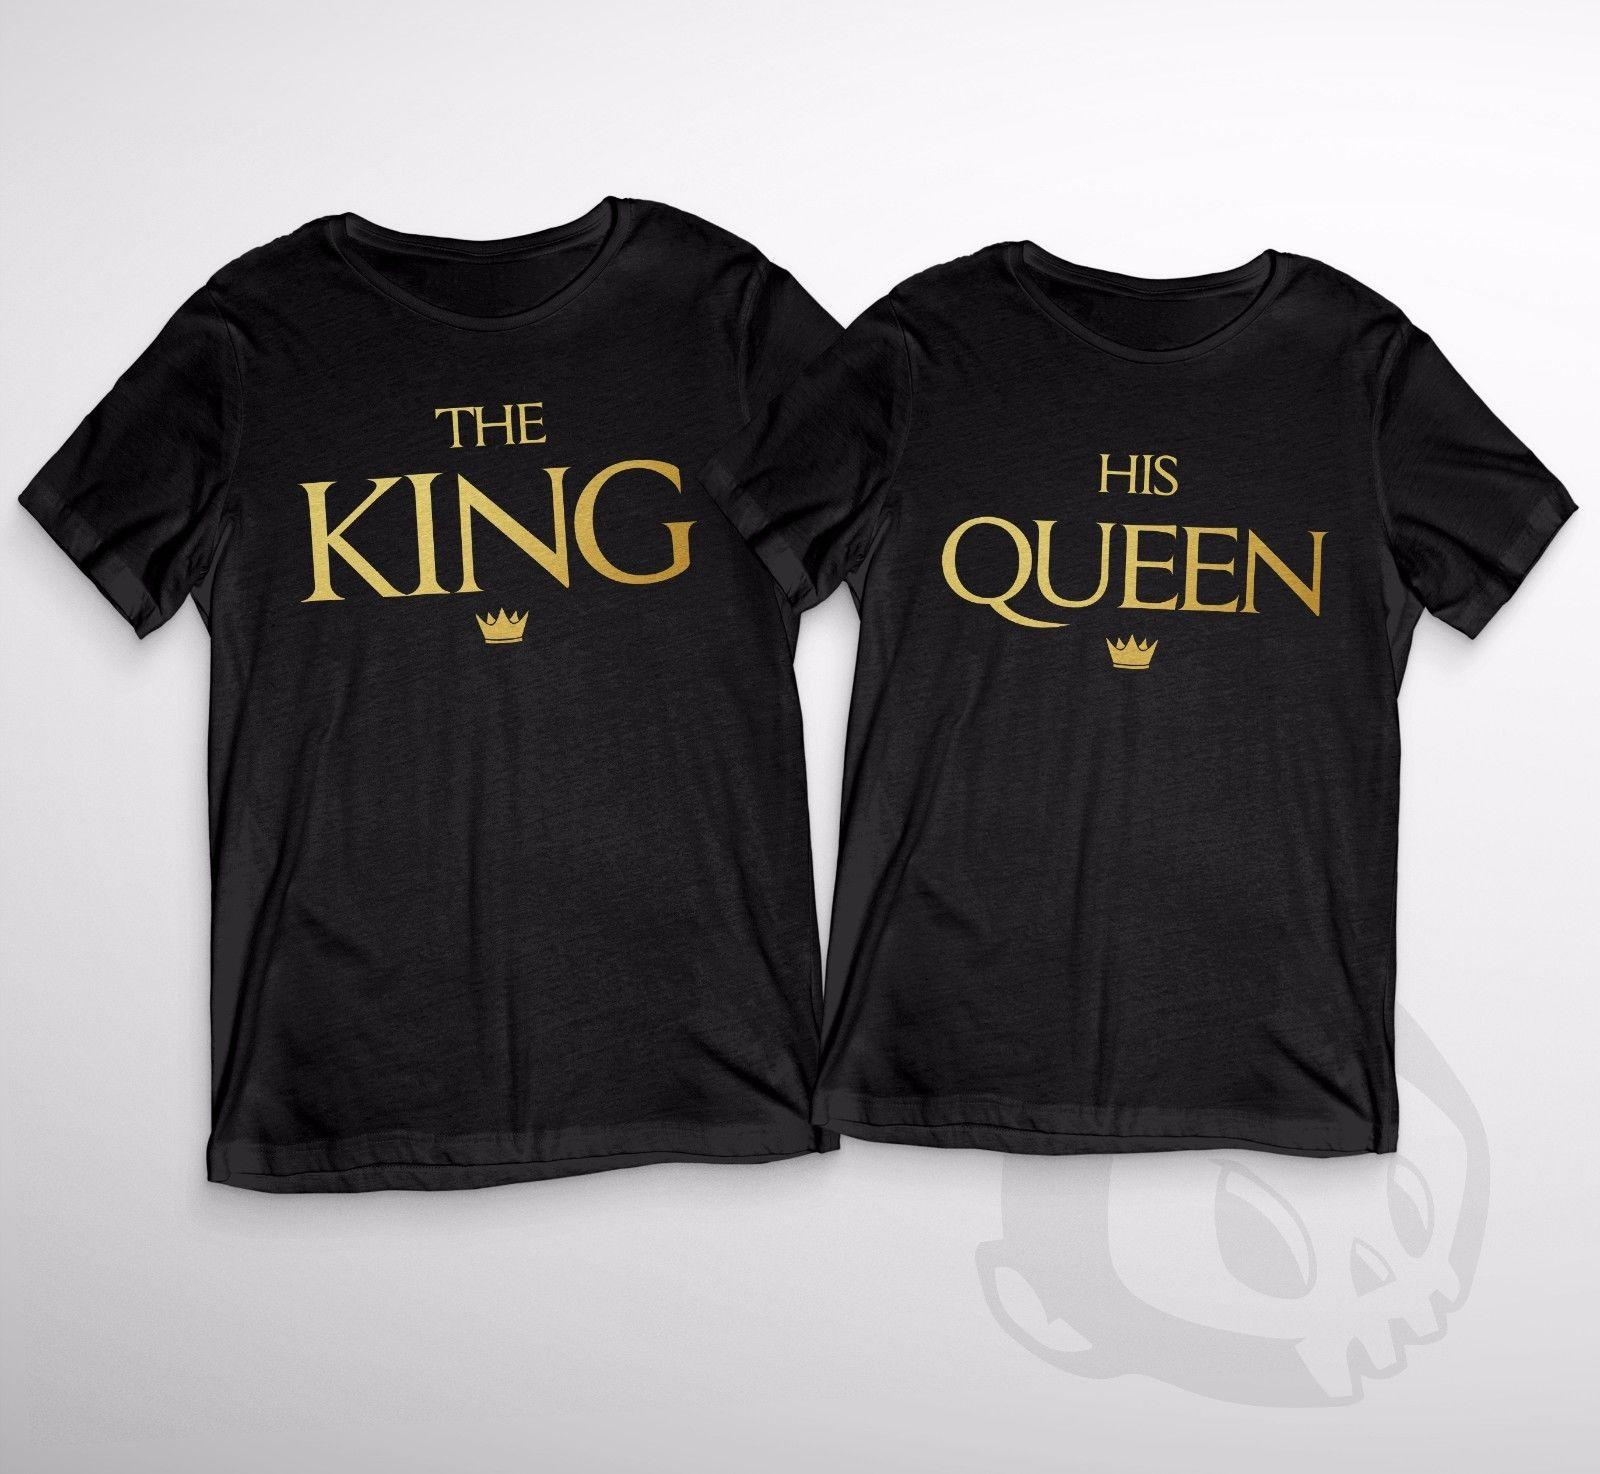 fdd869de98 The King & His Queen Adult Duo T Shirt Novelty Couple Cute Love Present Xmas  Cool Casual Pride T Shirt Men Unisex New Fashion Humorous Shirts Buy Tee  Shirts ...